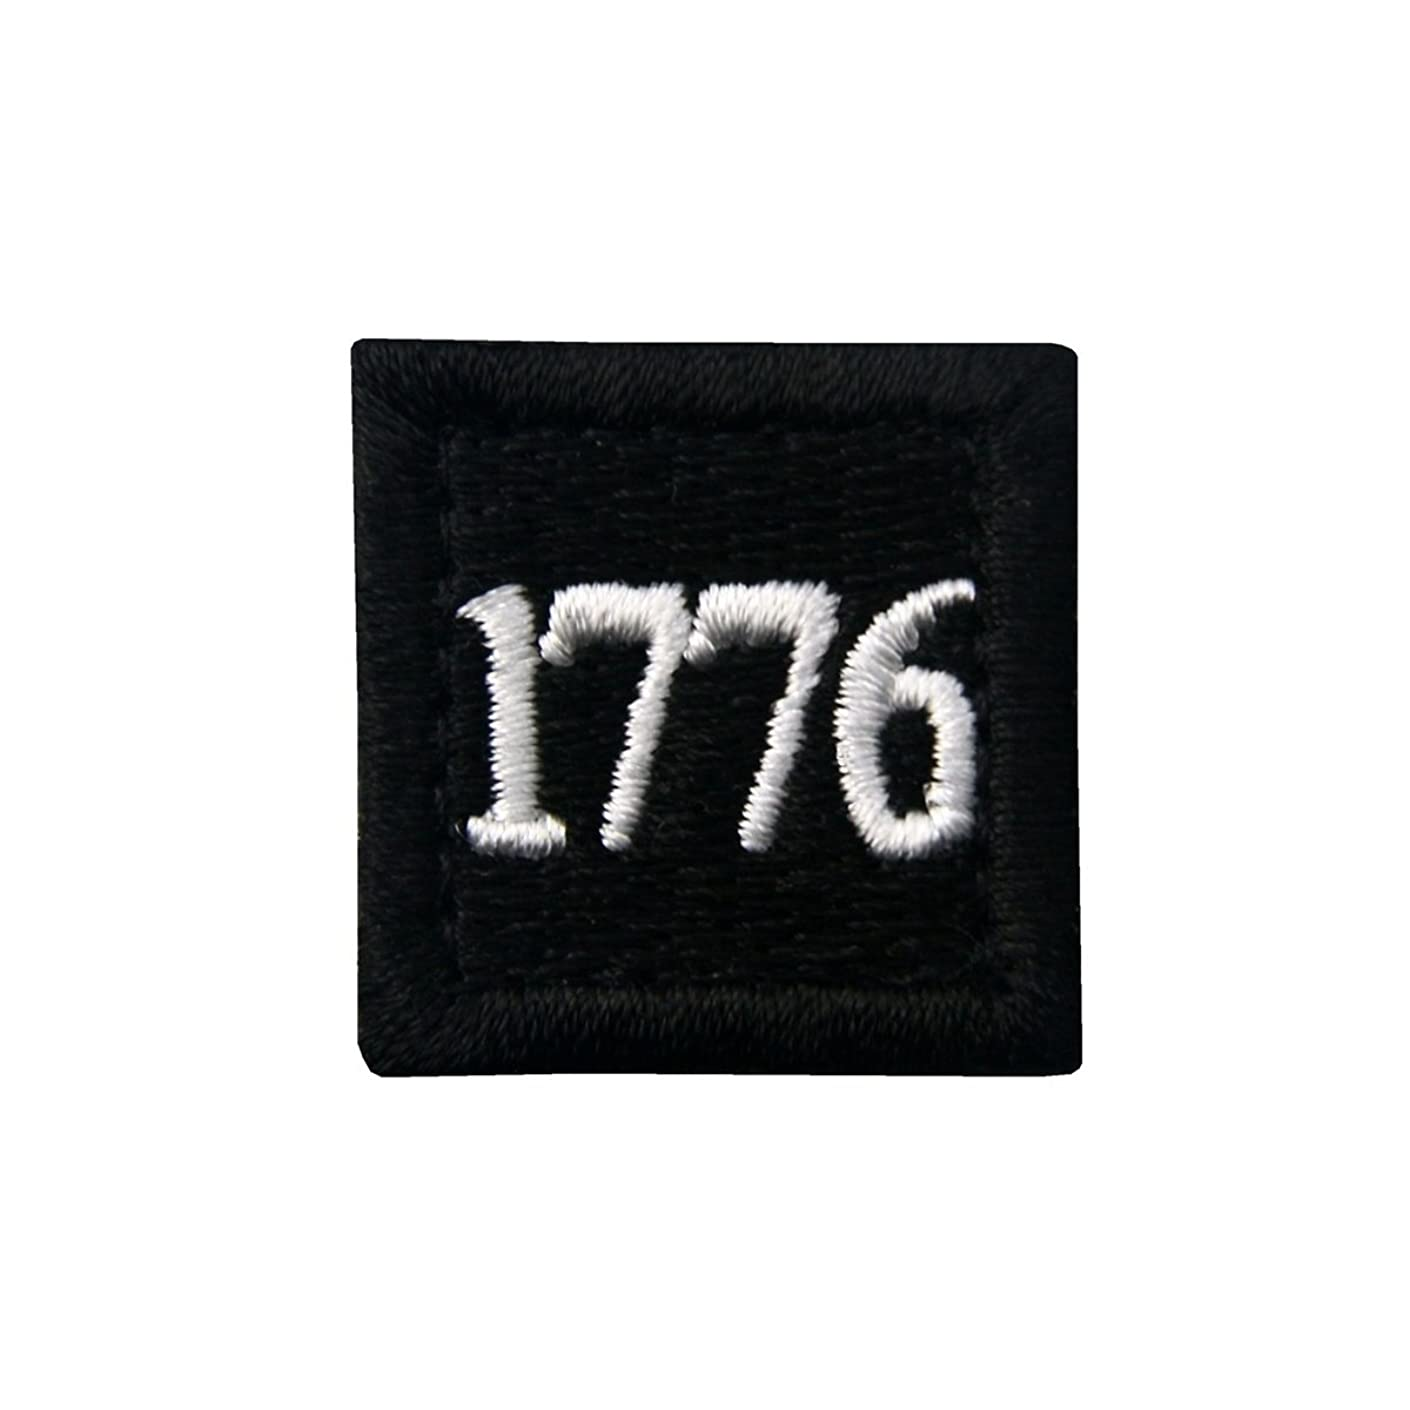 1776 American Independence Emblem Tactical USA Morale Embroidered Applique Fastener Hook&Loop Patch - Black